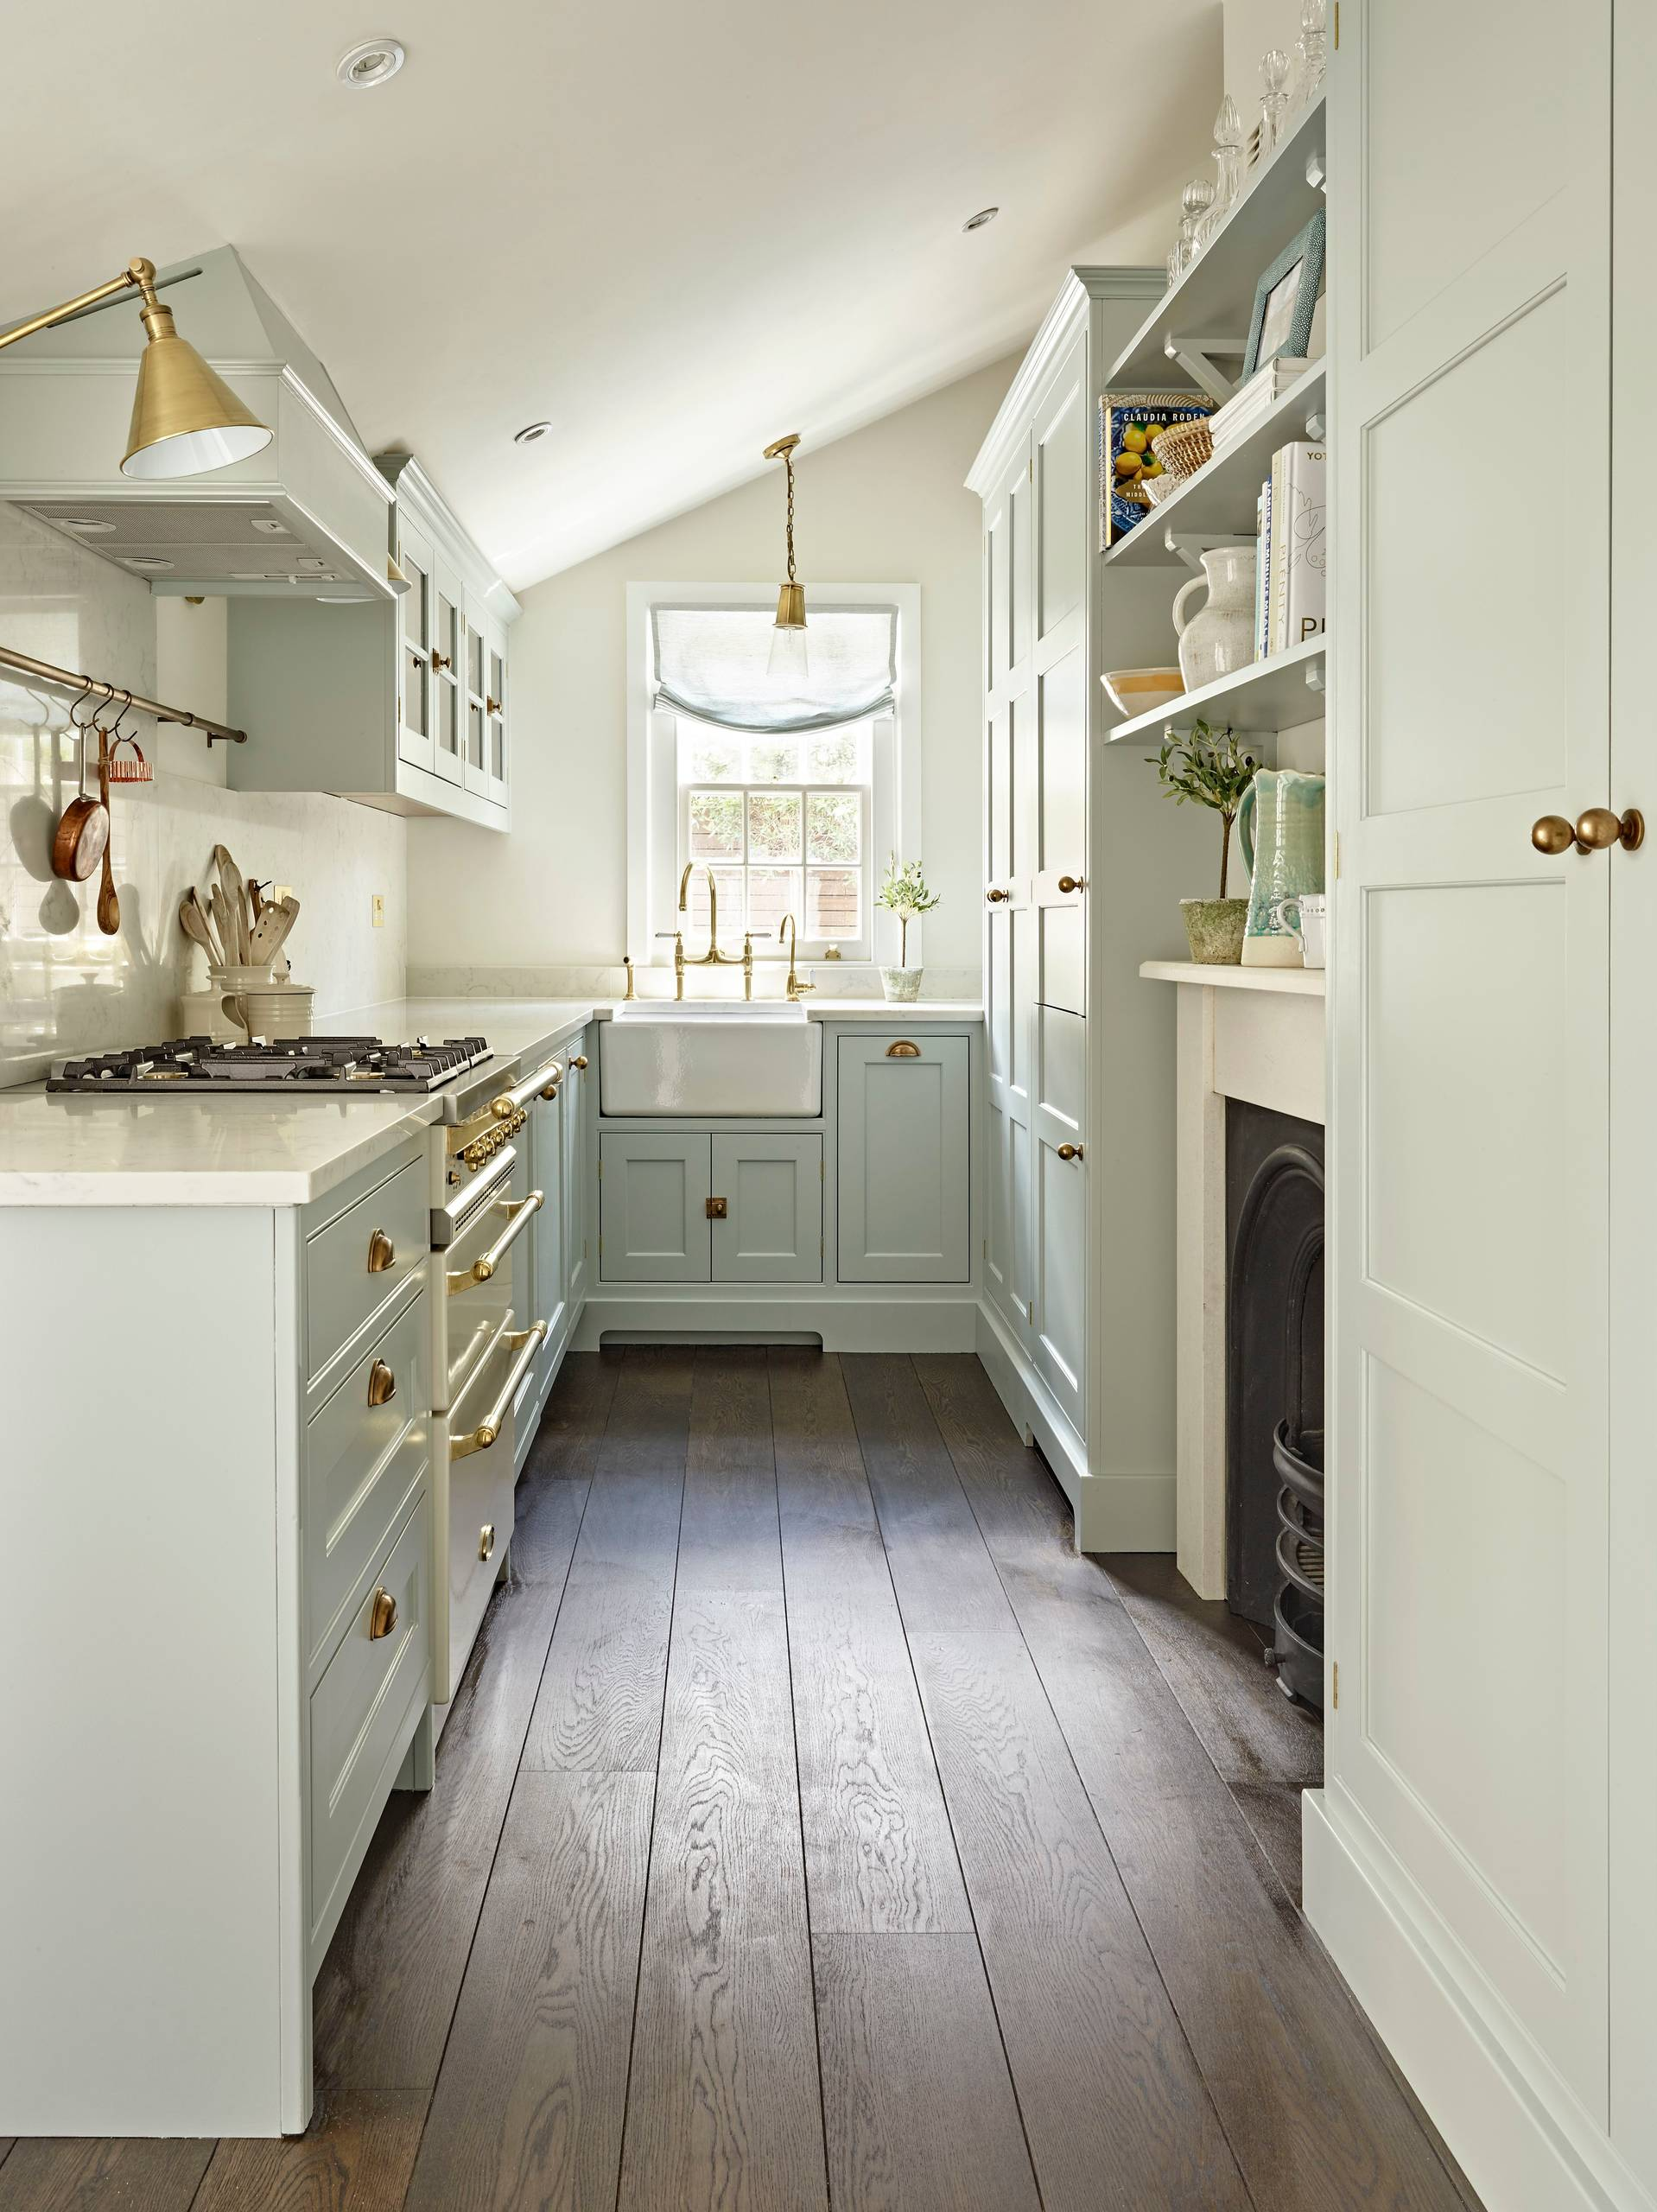 75 Beautiful Small Kitchen With Blue Cabinets Pictures Ideas January 2021 Houzz